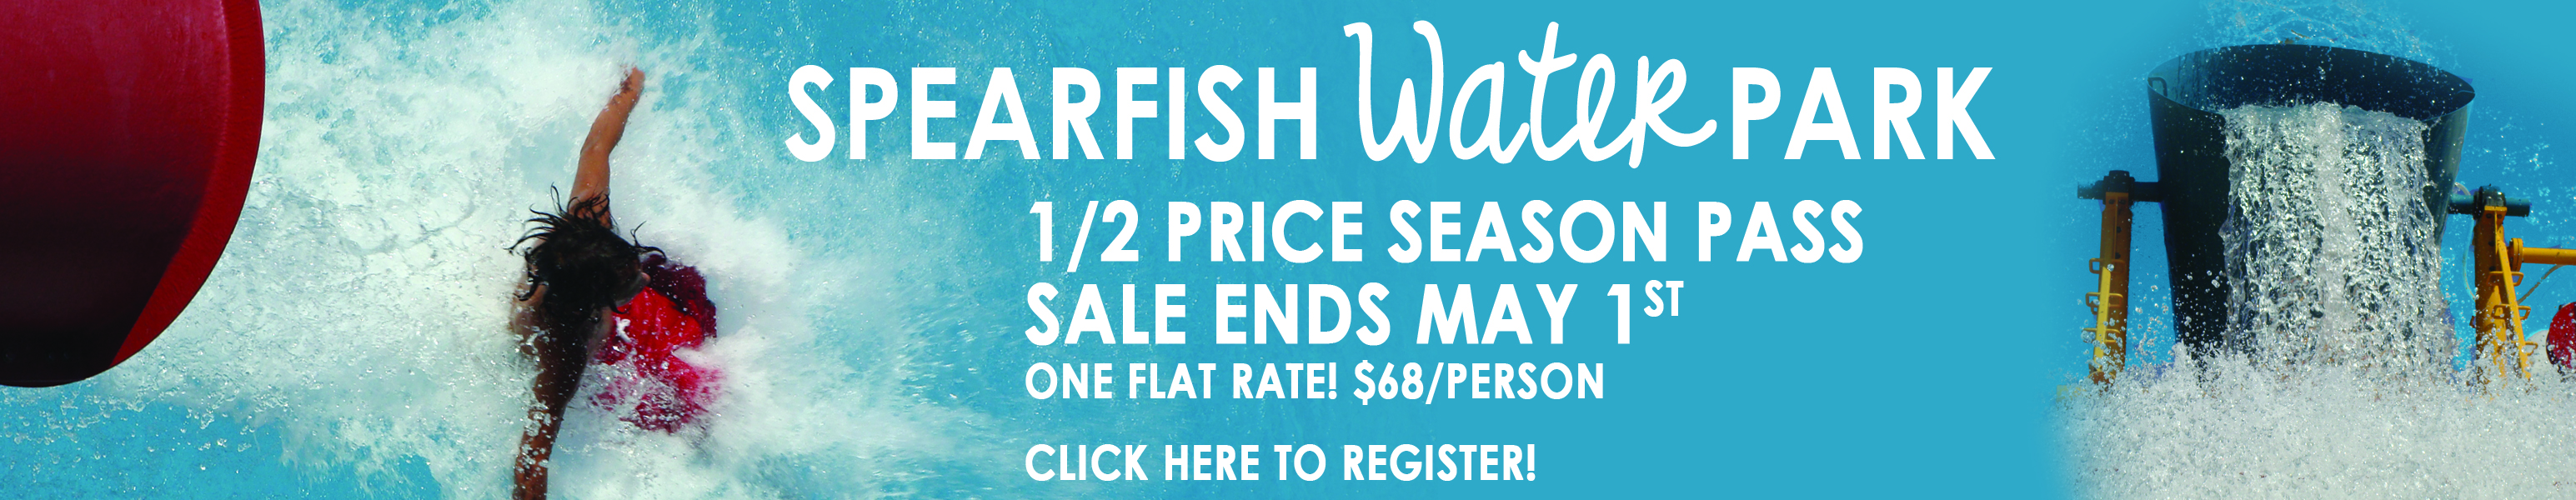 Half Price Water Park Pass Sale. Click here to register